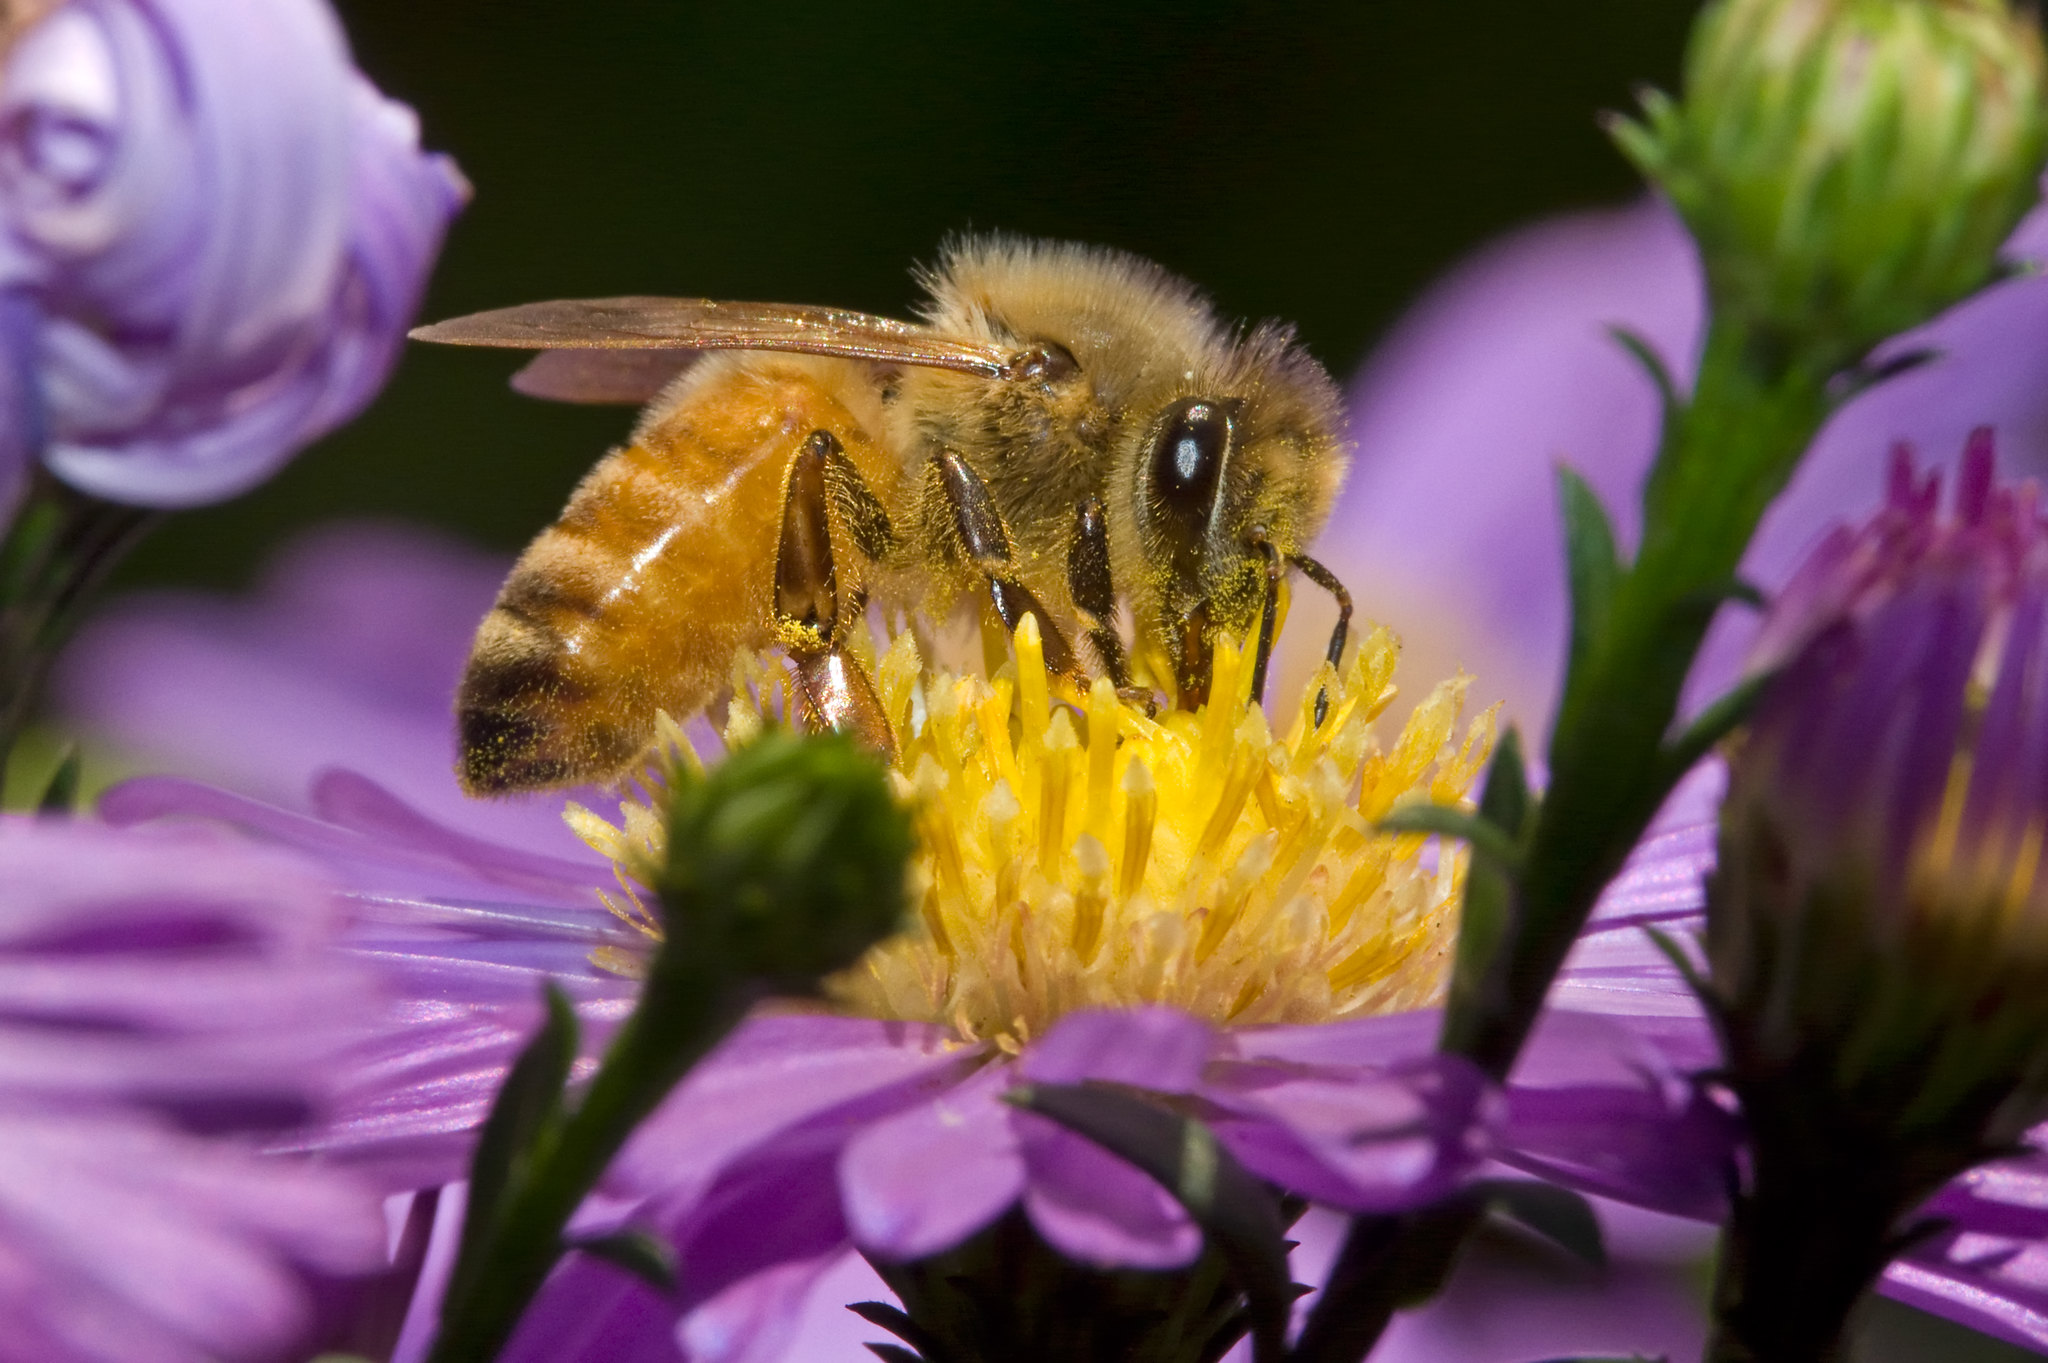 Honeybee perches on purple and yellow flower gathering nectar